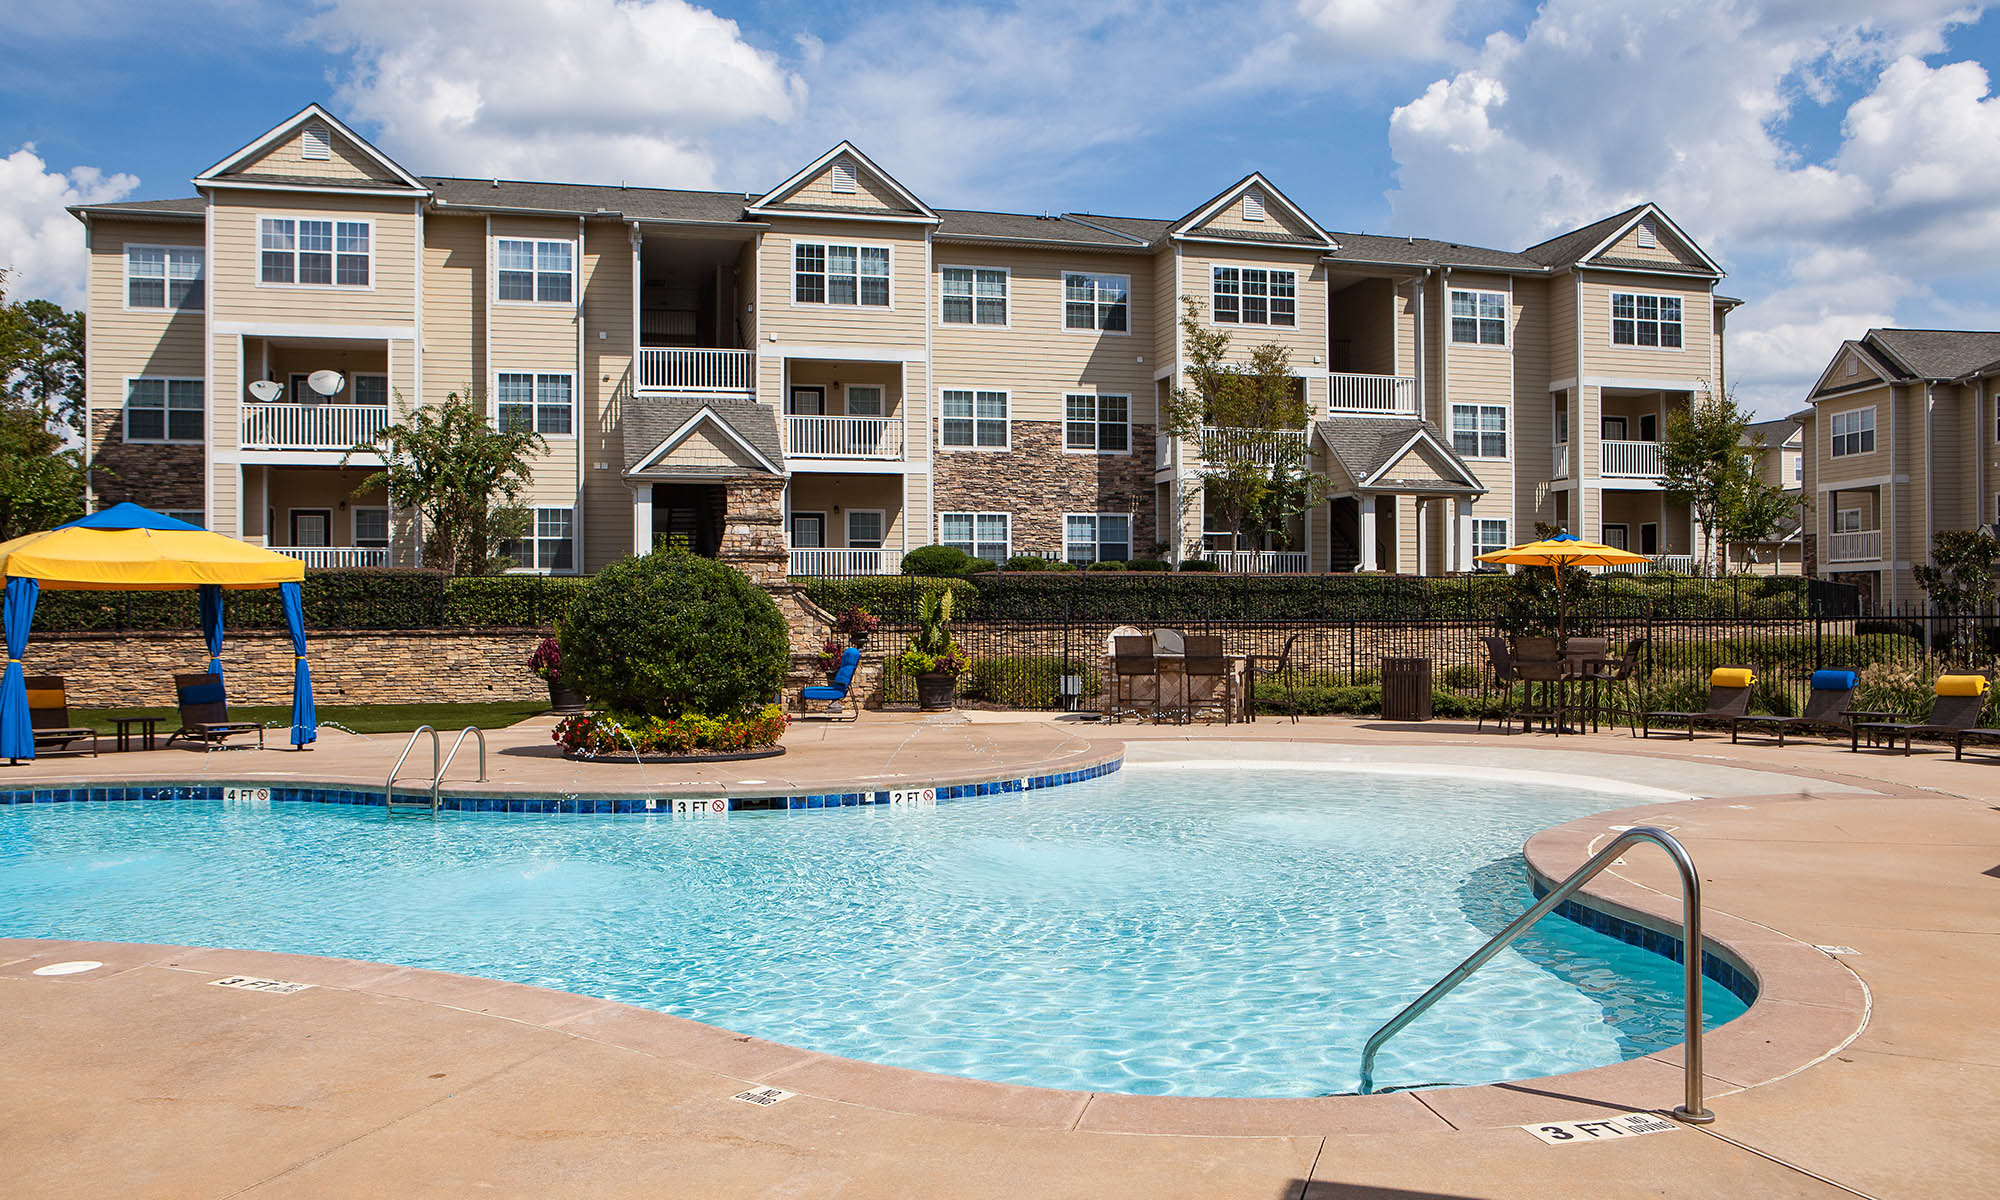 Welcome to The Parke at Oakley in Fairburn, GA